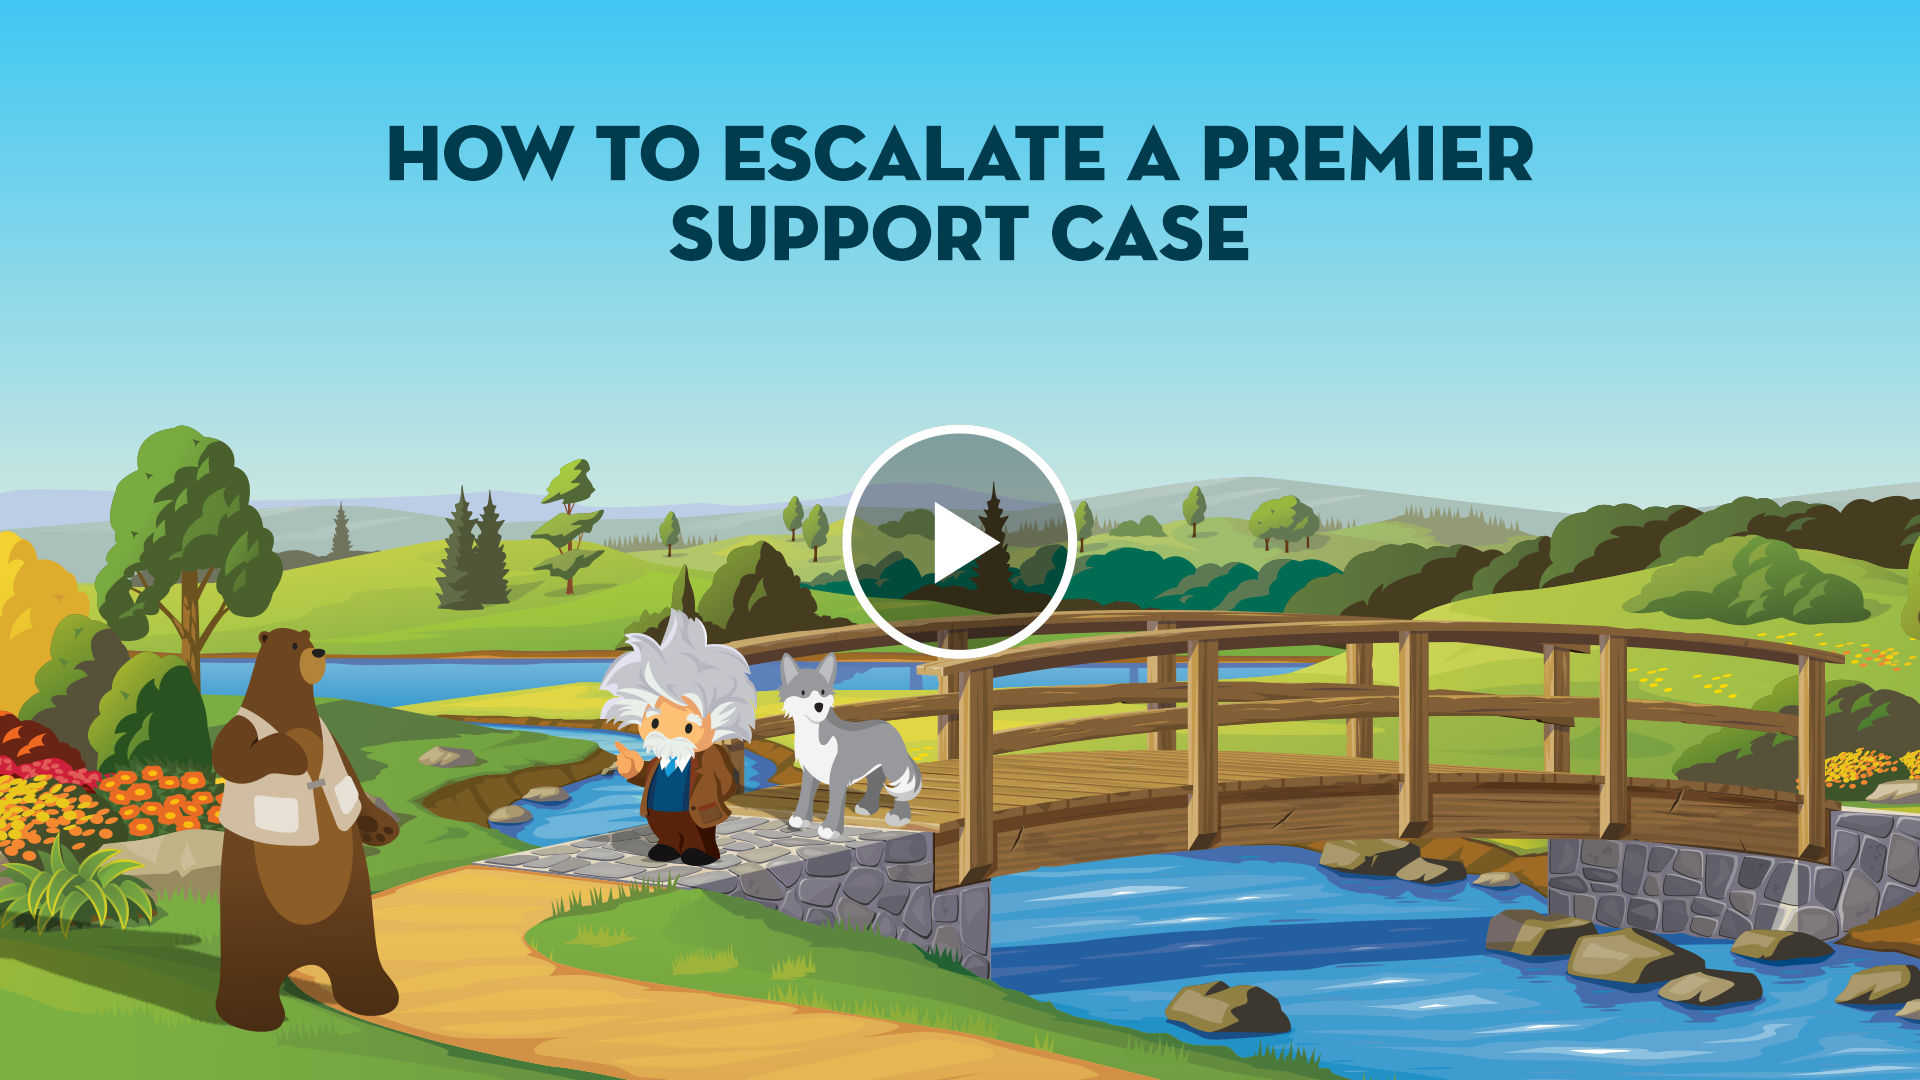 How to Escalate a Premier Support Case.